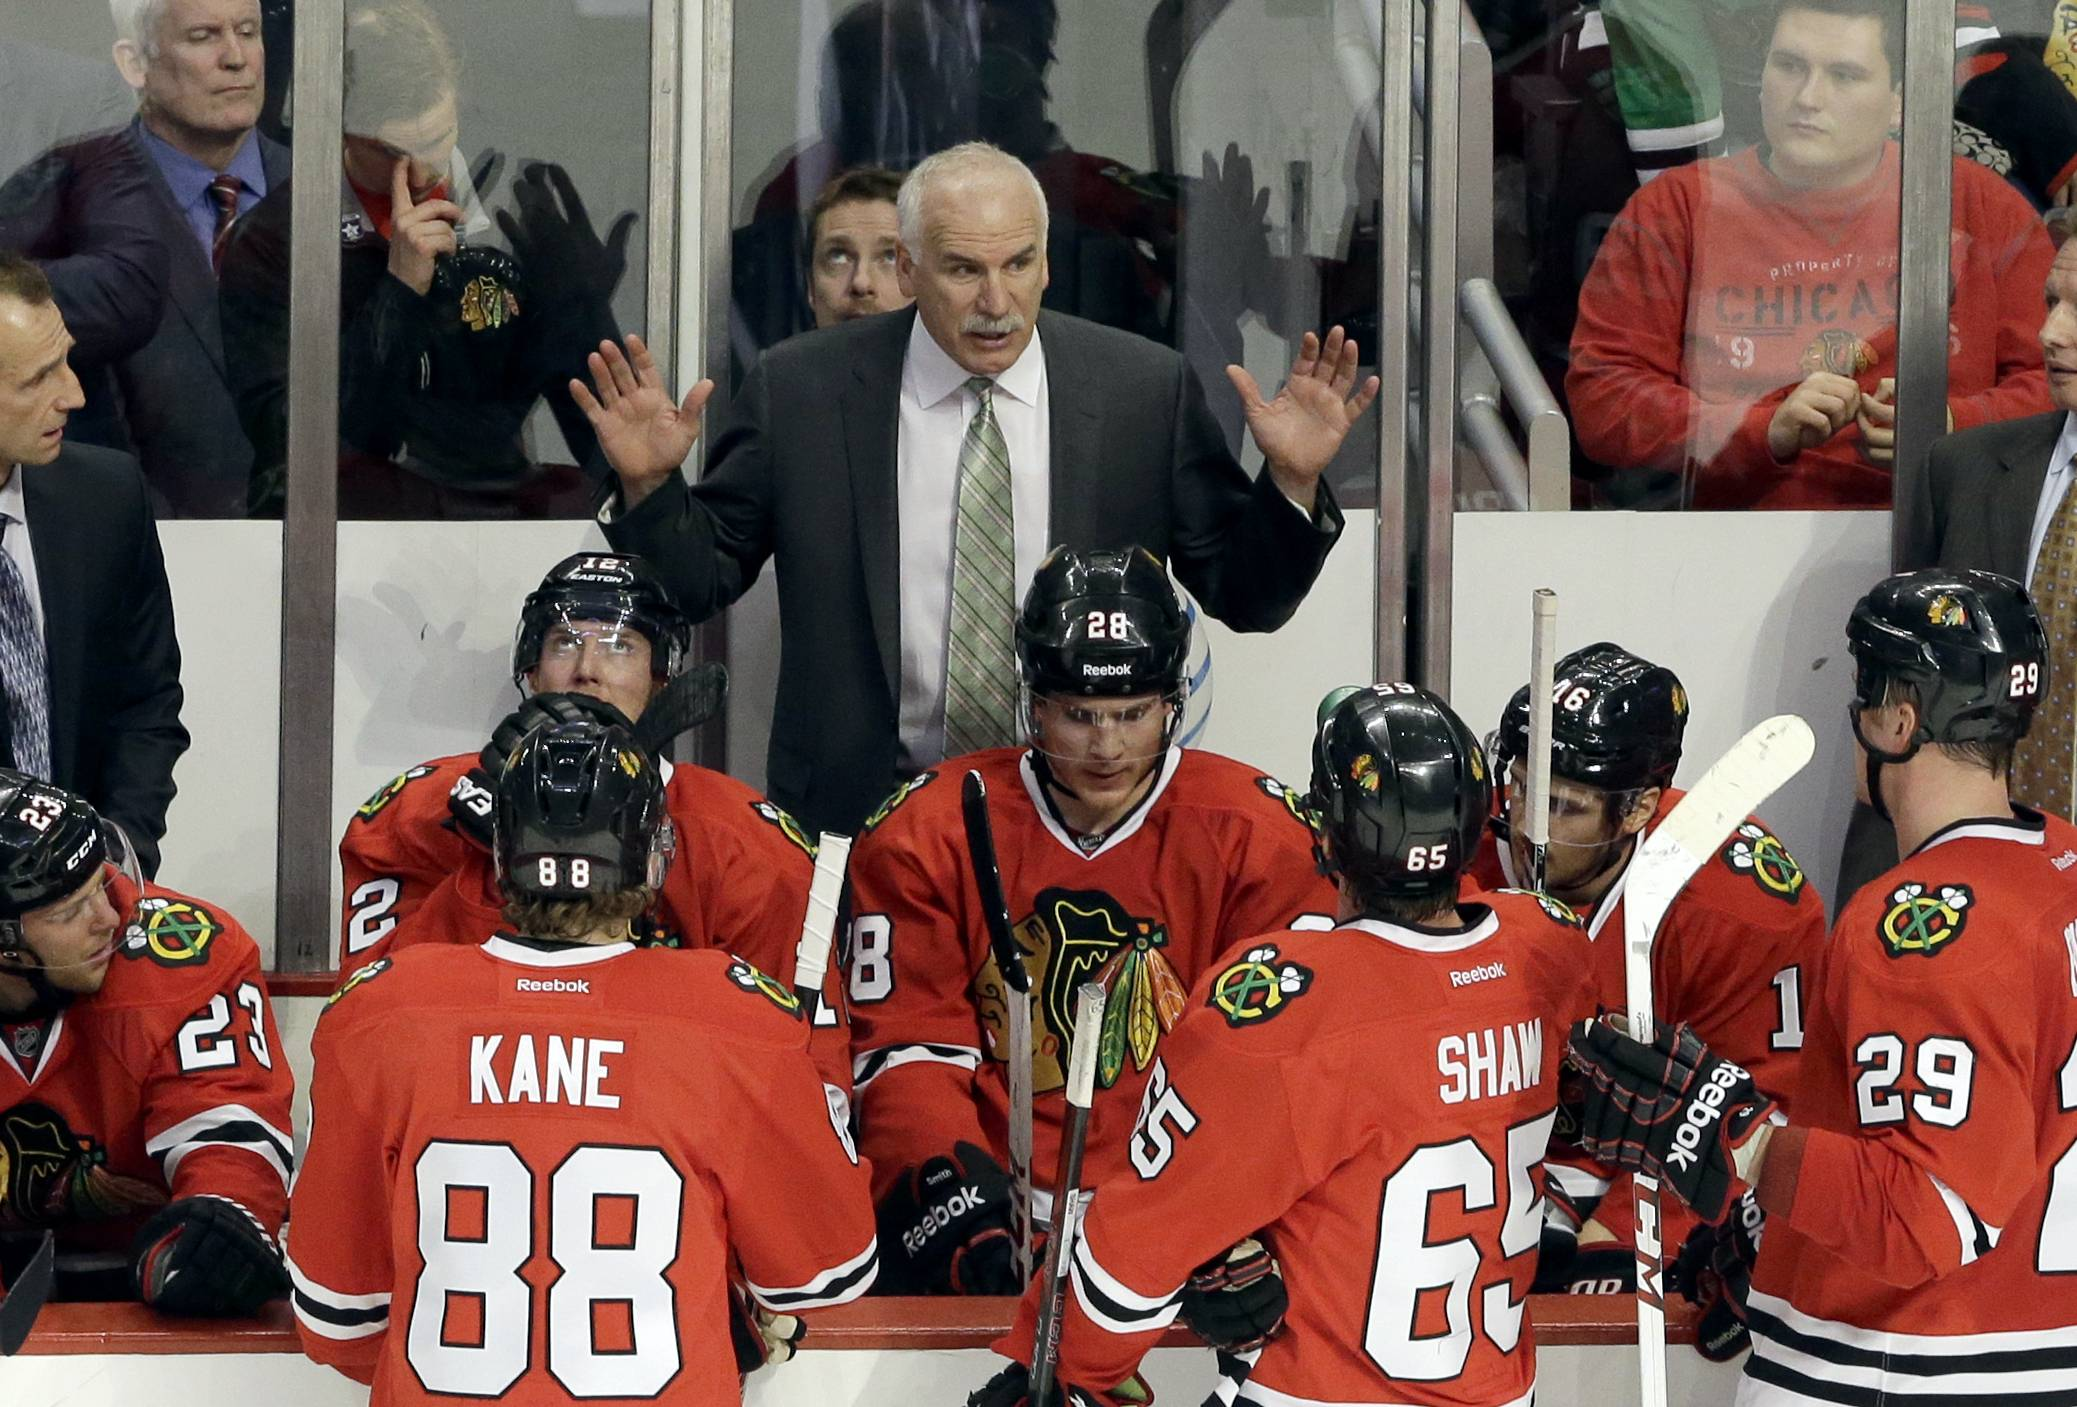 Blackhawks coach Joel Quenneville talks to his team during the third period of Friday night's 3-2 loss to the last-place Nashville Predators at the United Center.